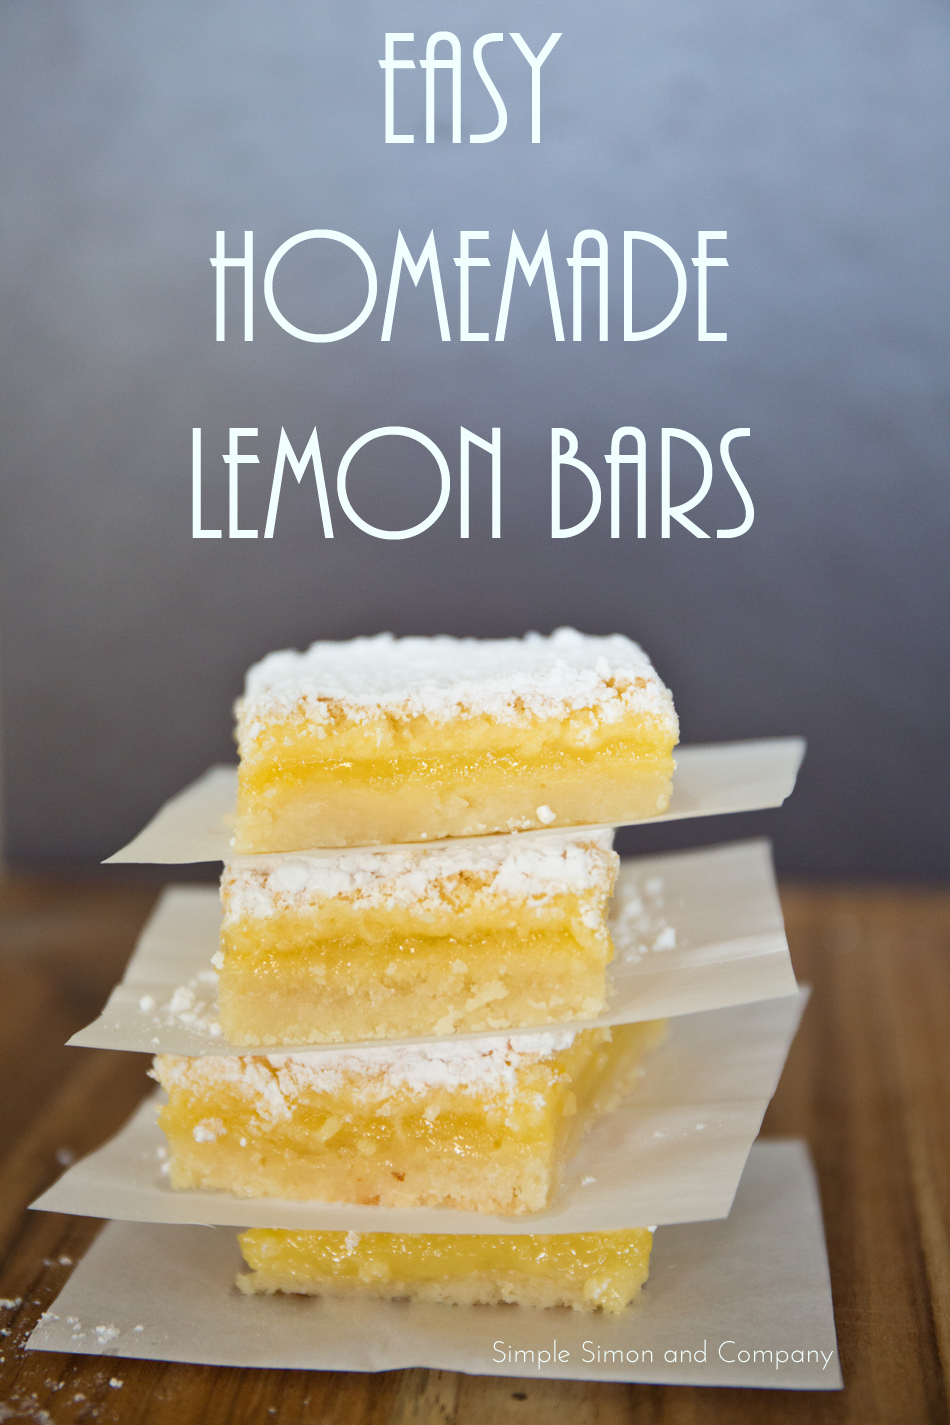 Easy Homemade Lemon Bars title